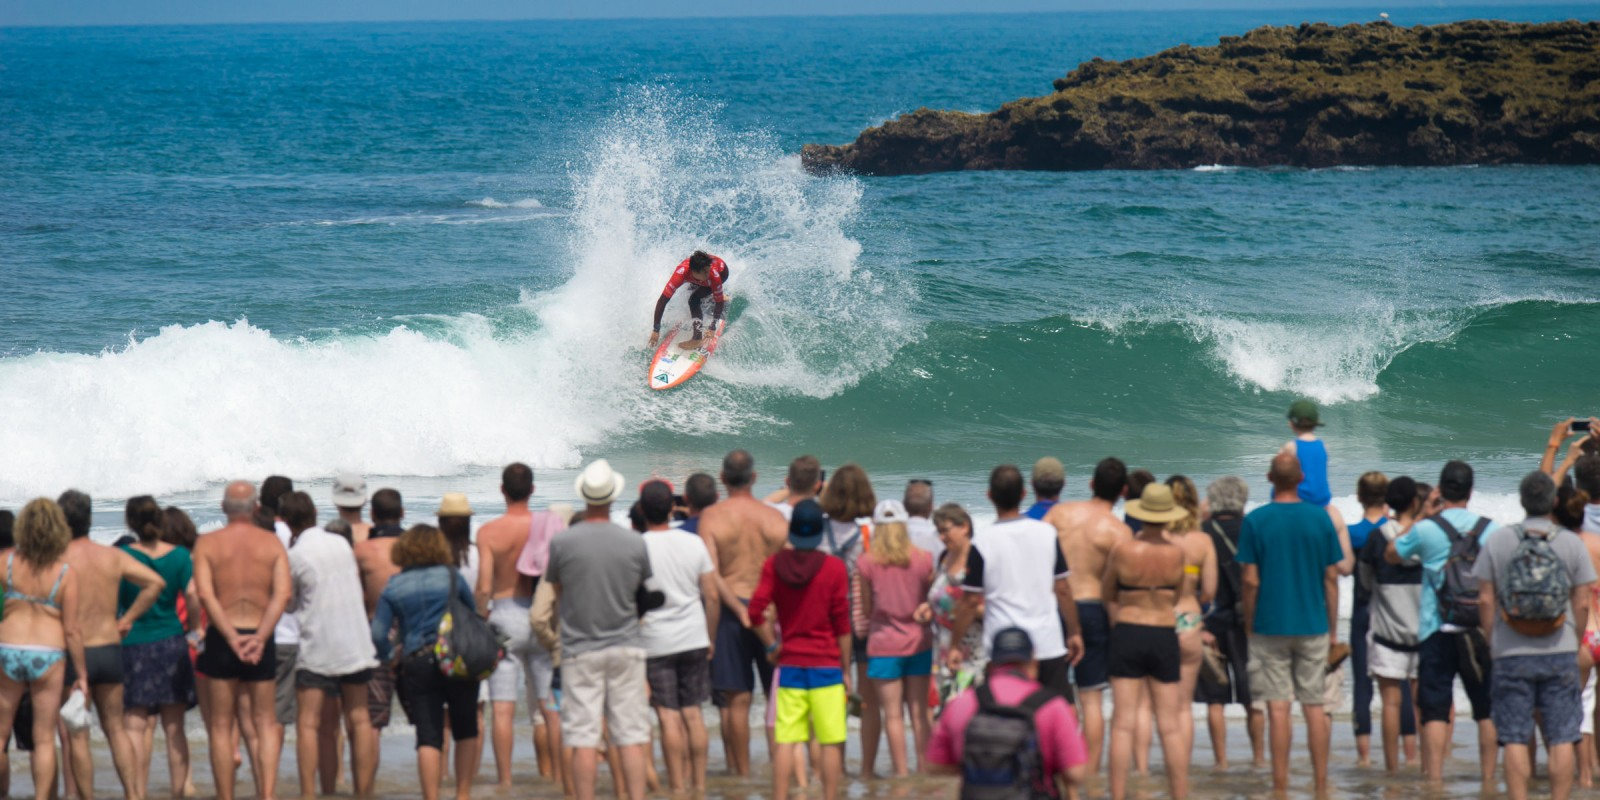 Jhony Corzo crowned Men's ISA World Champion at 2017 ISA World Surfing Games